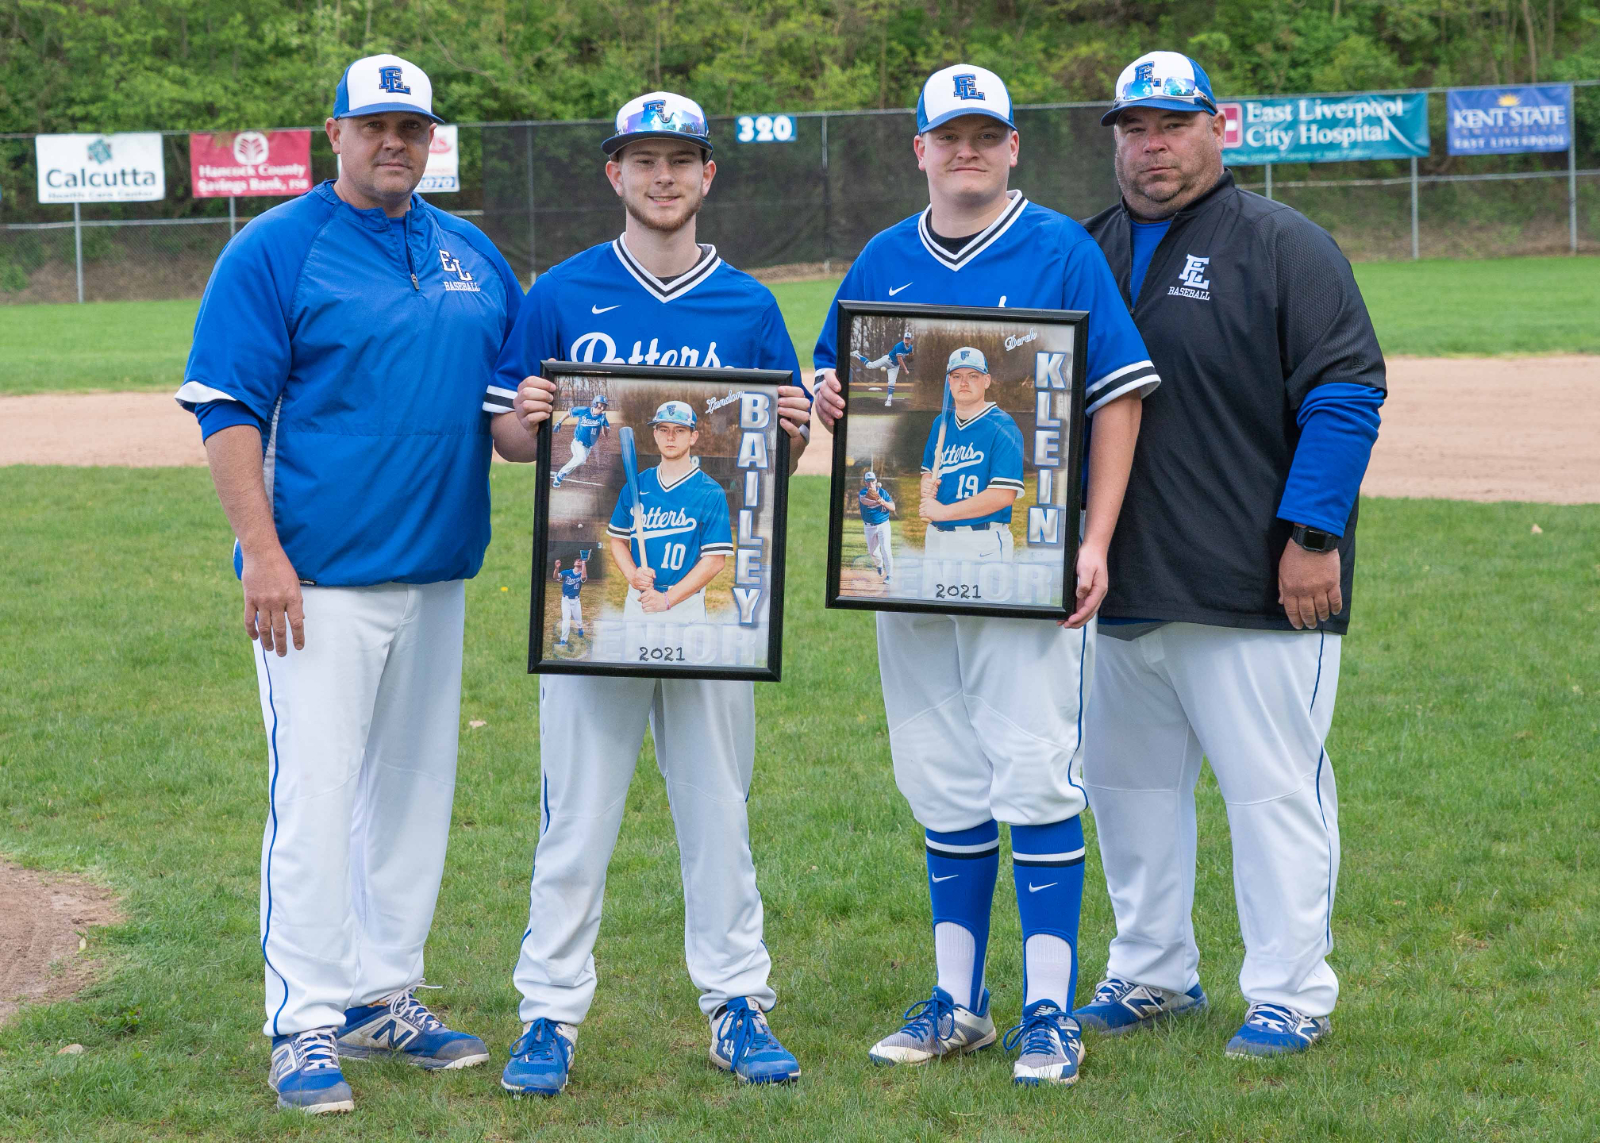 Potters get win on Senior Night